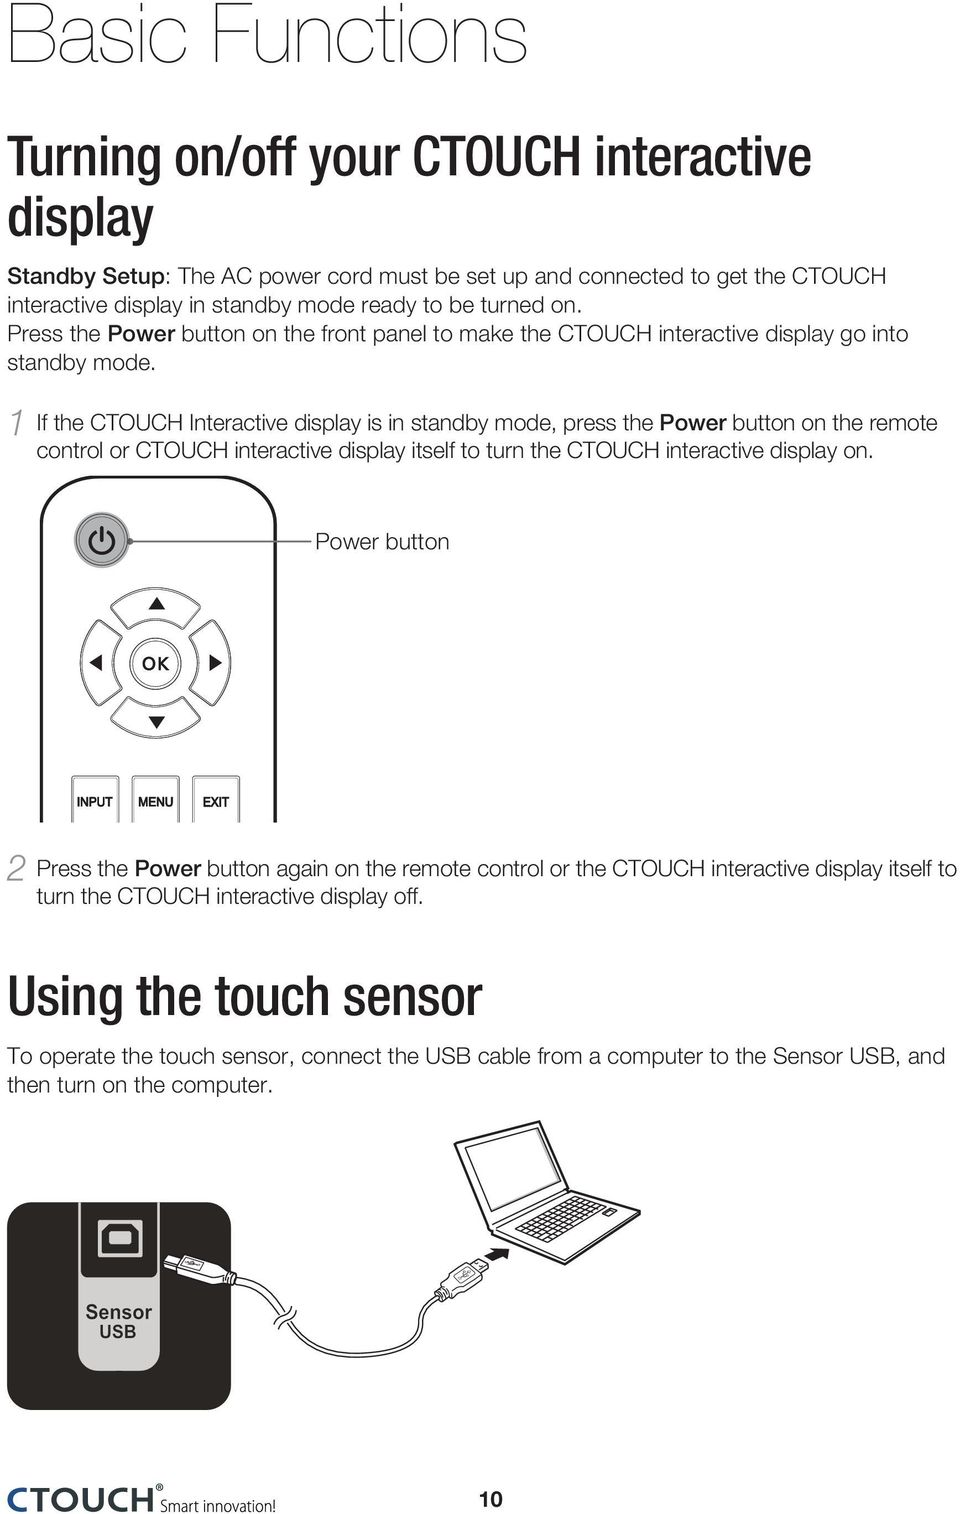 1 If the CTOUCH Interactive display is in standby mode, press the Power button on the remote control or CTOUCH interactive display itself to turn the CTOUCH interactive display on.